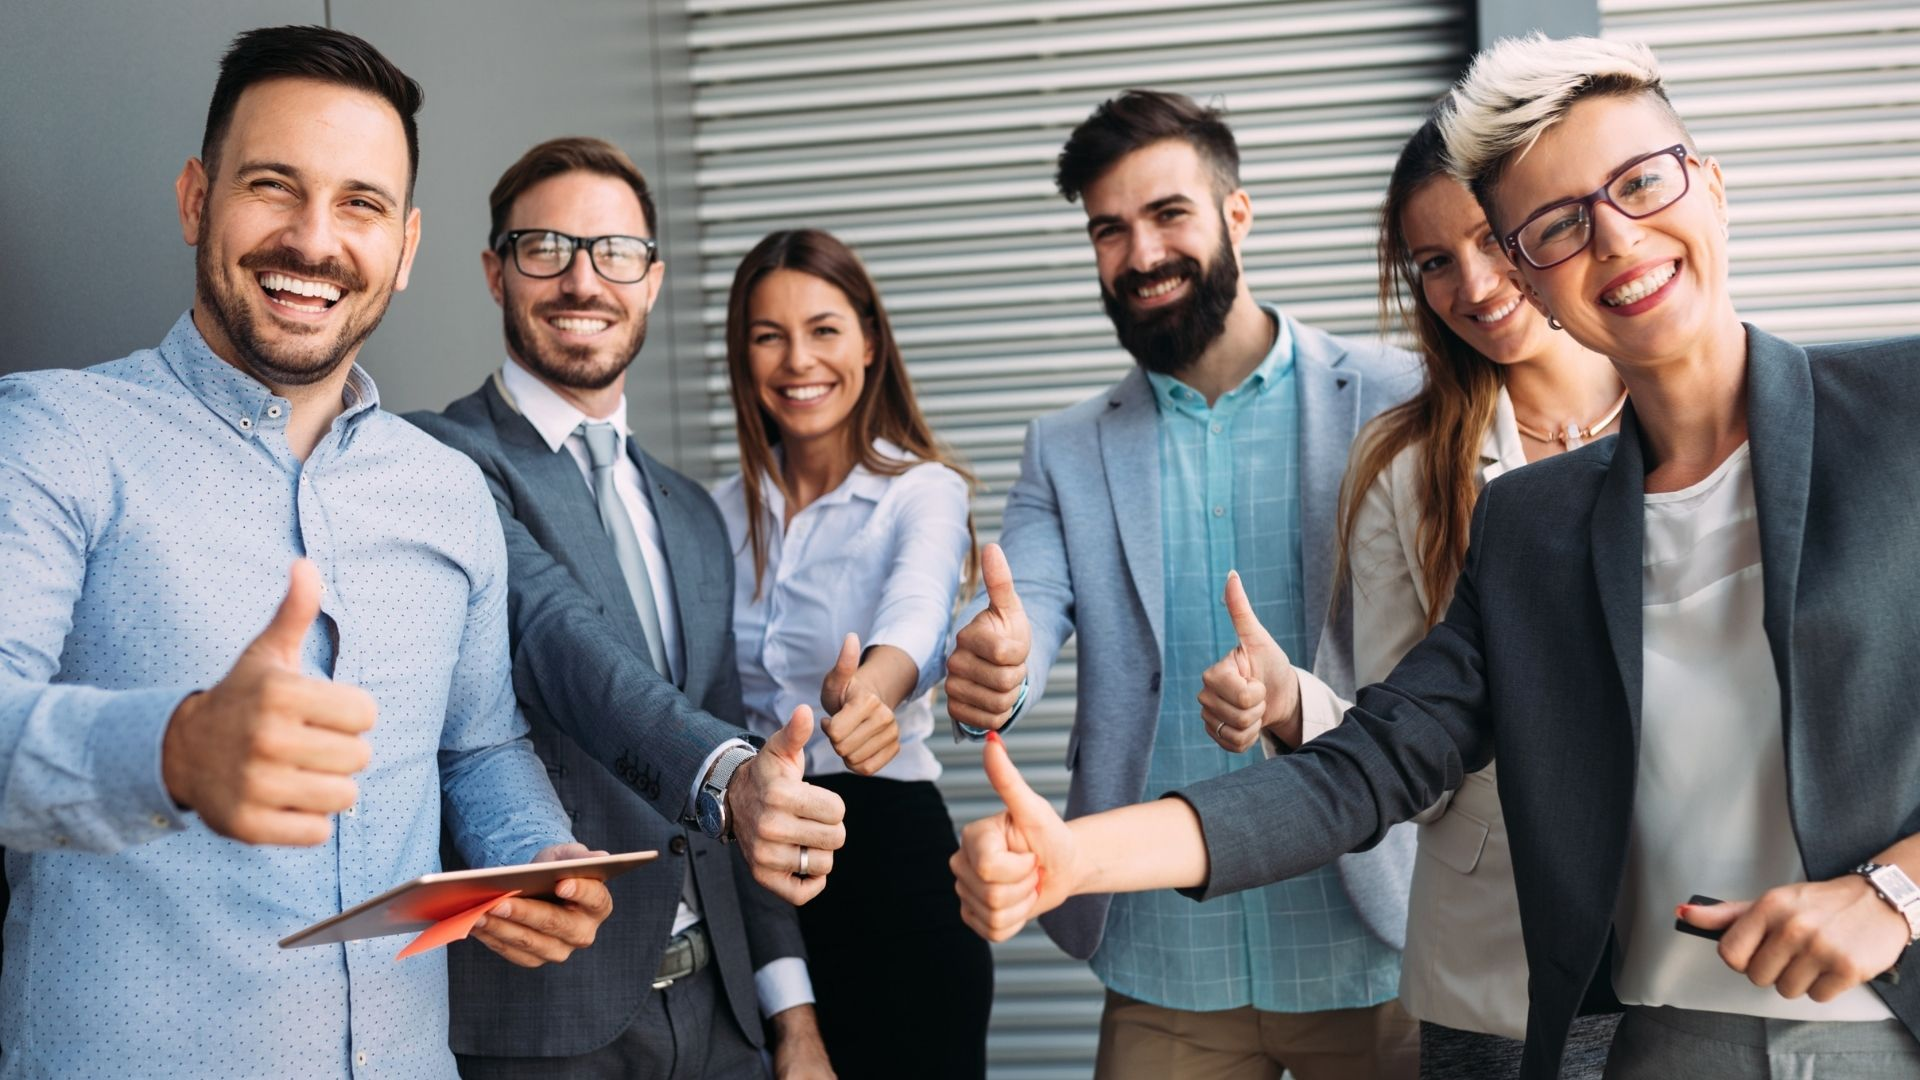 Business is changing - is your culture changing with it? 11